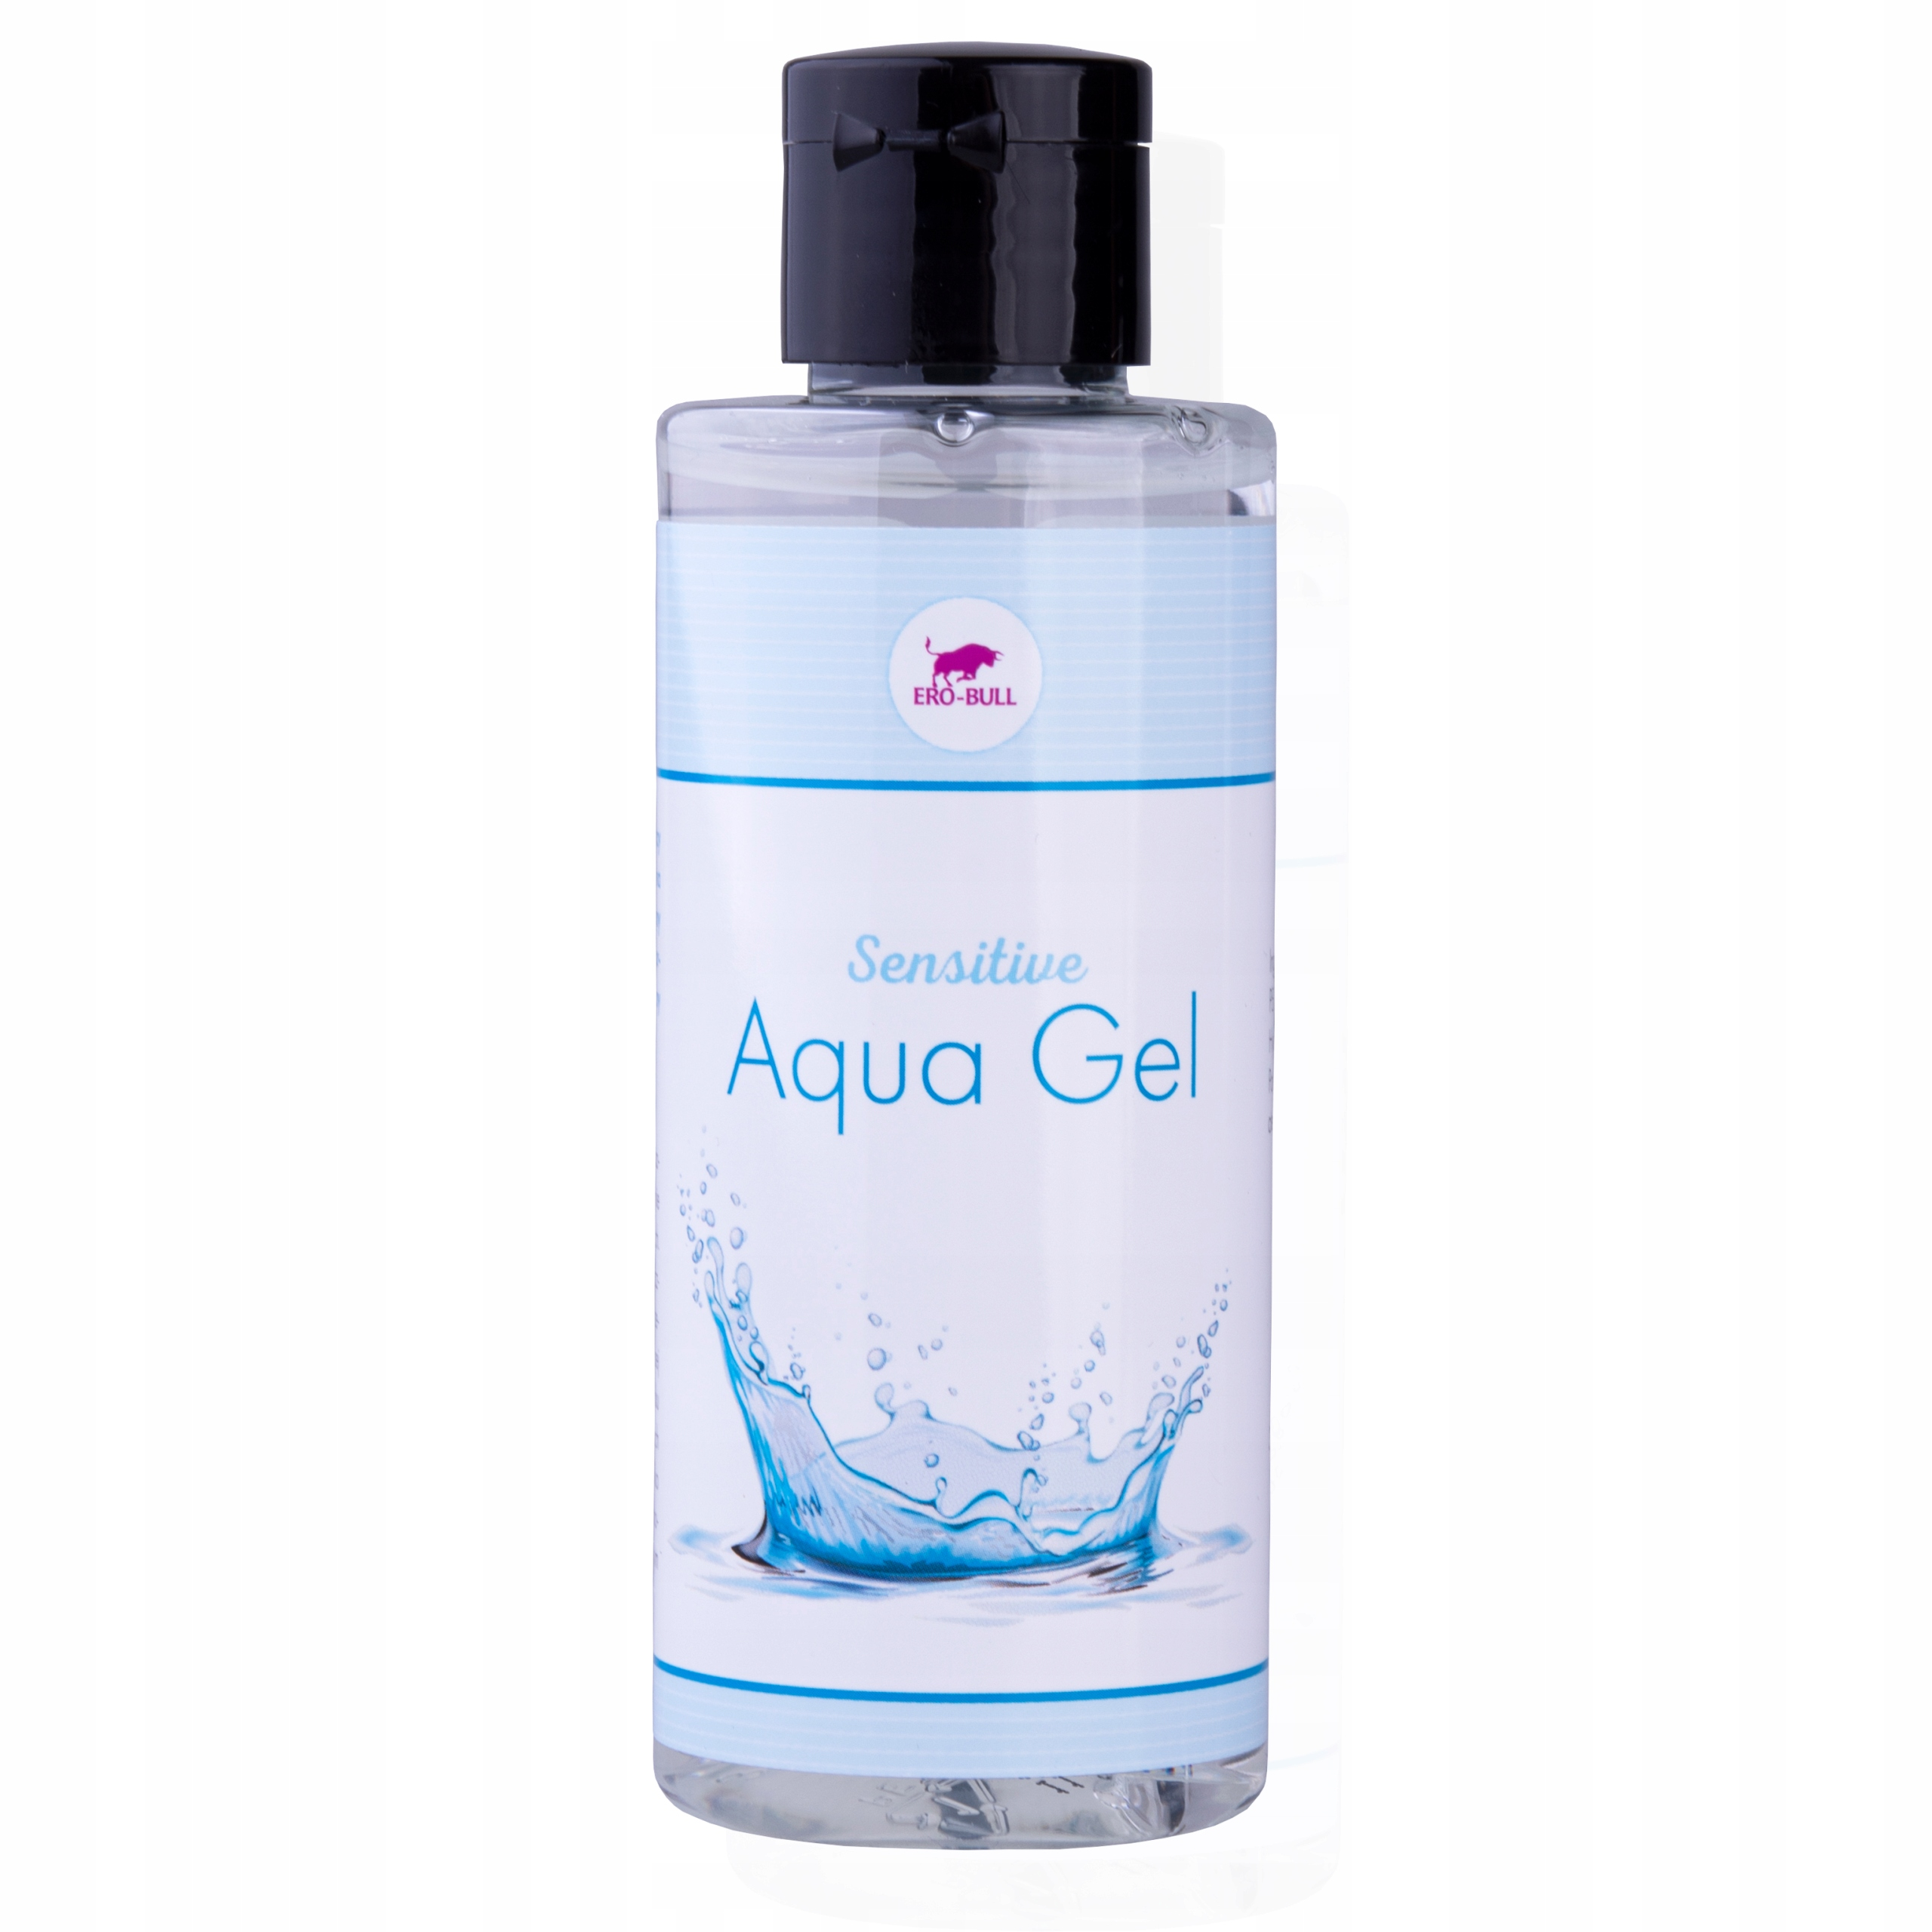 Item Sensitive 150 ml Aqua GEL LUBRICANT MOISTURIZER